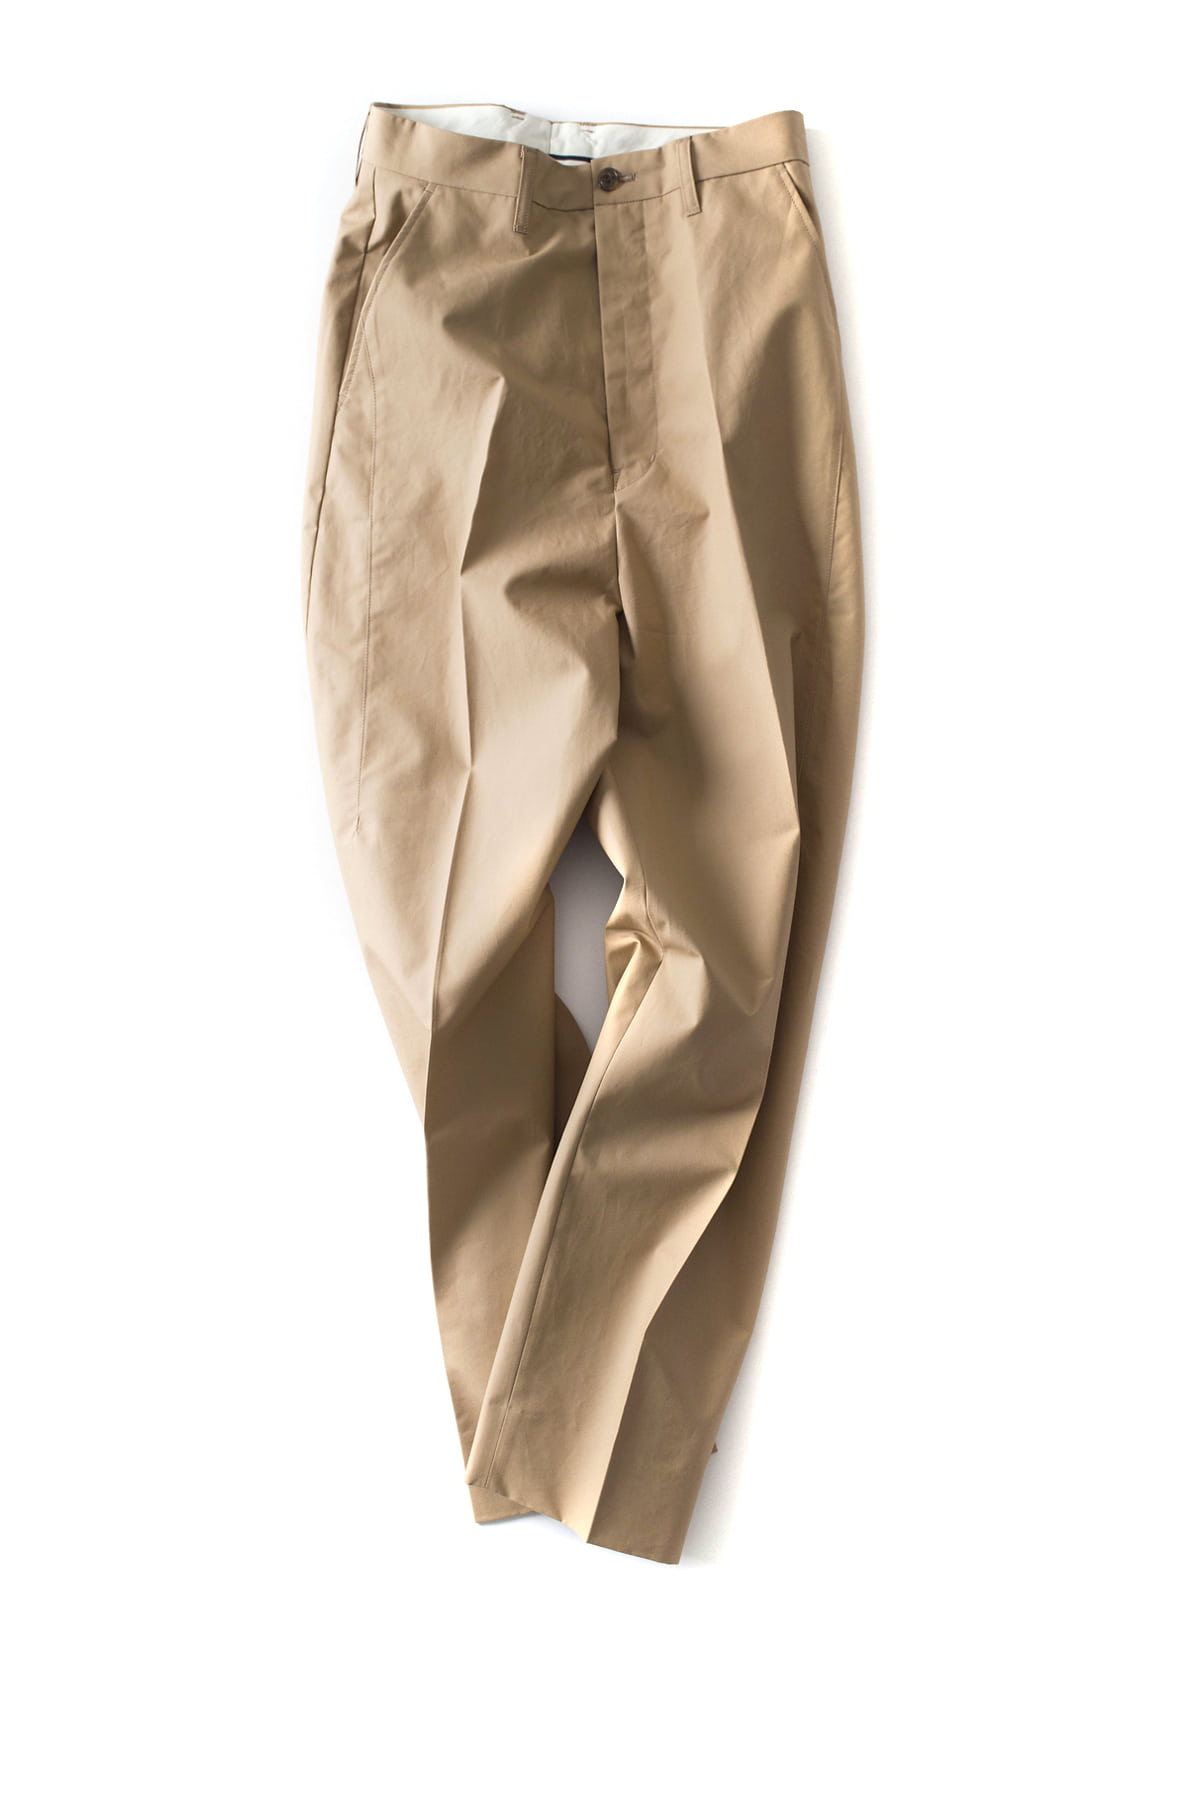 Name : Weather Cloth Tapered Pants (Beige)